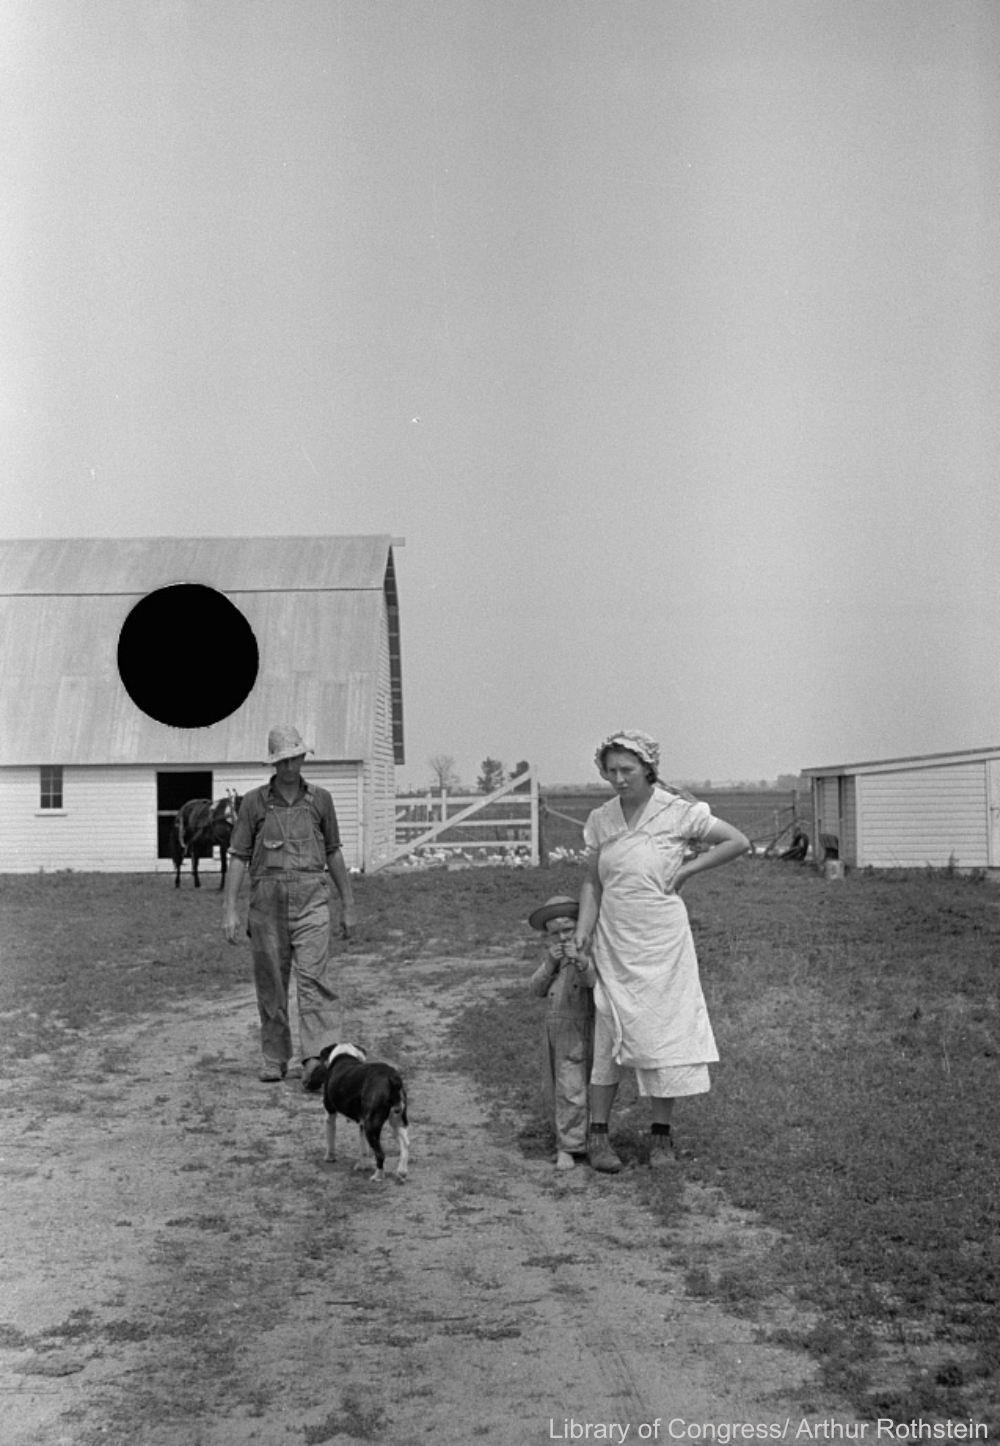 Farmer with His Family and Dog, Rejected FSA Photo